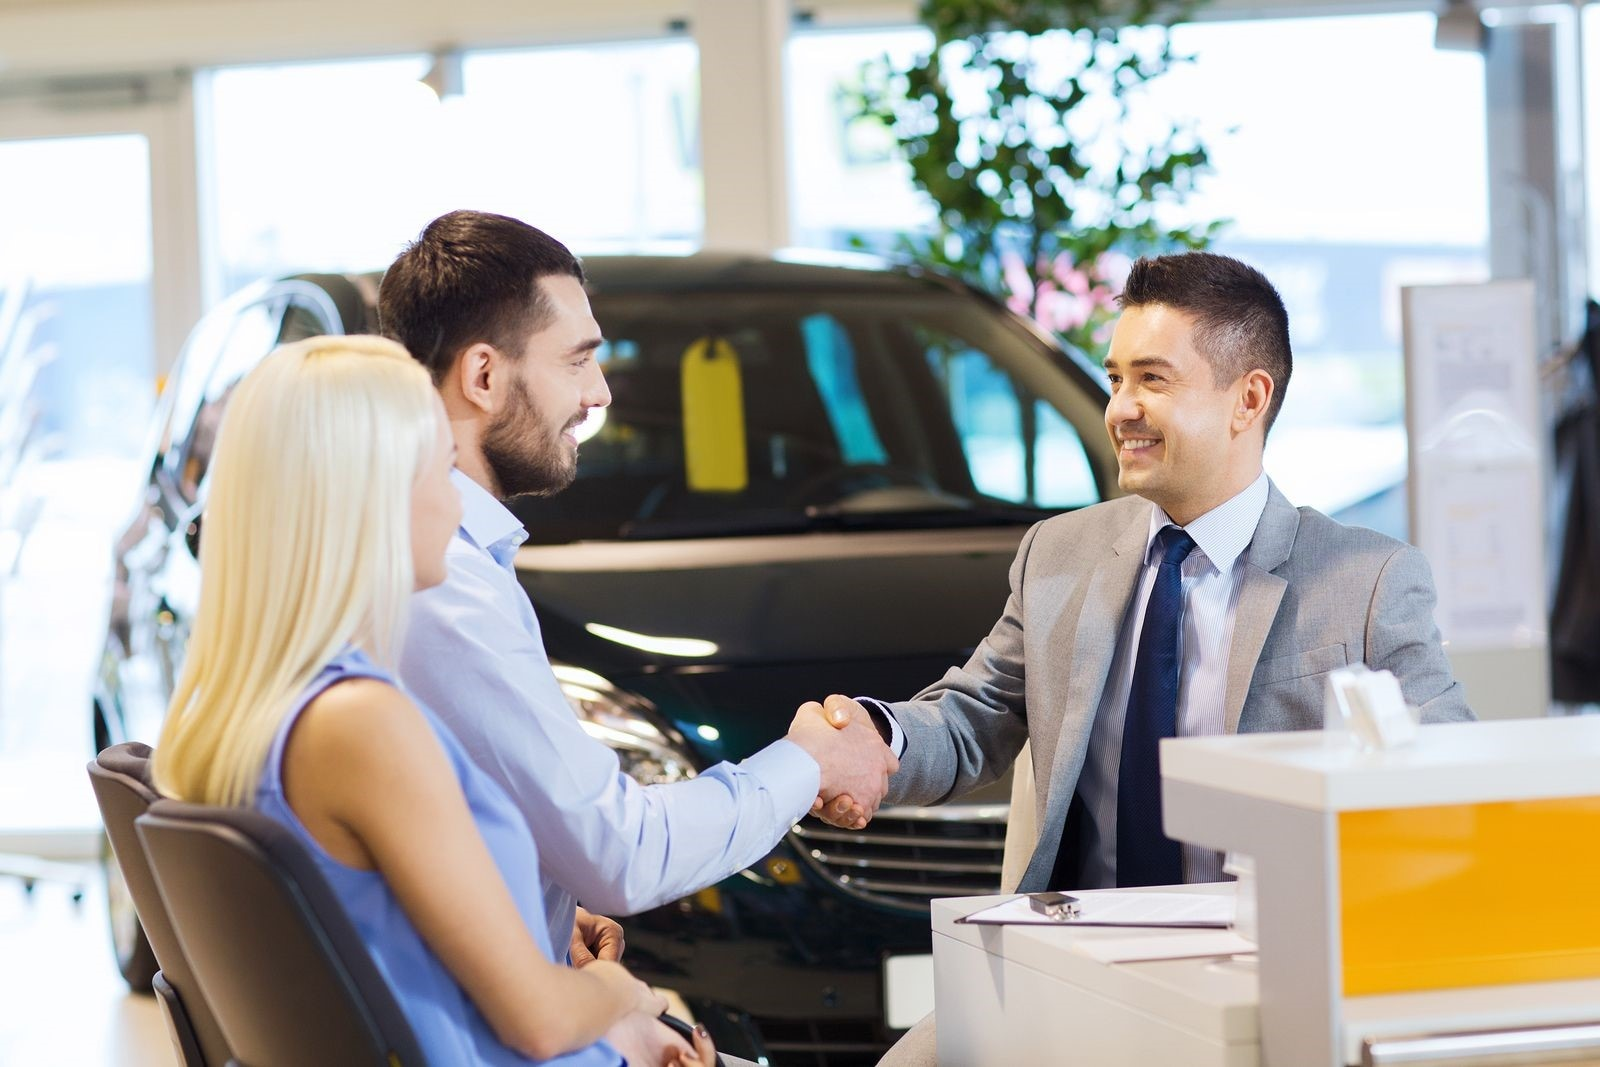 Used Car Dealerships Describe the Many Benefits of Buying Pre-Owned